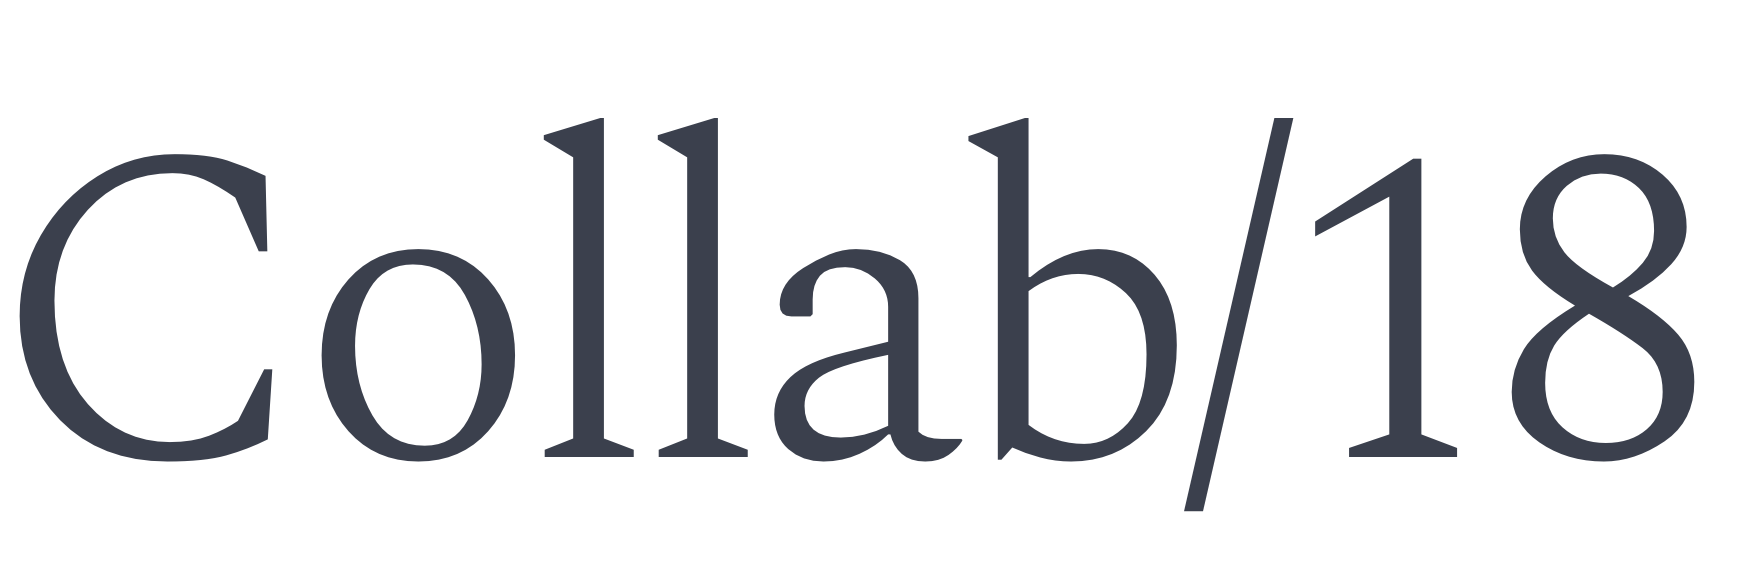 collab18-logo-c@2x copy.png